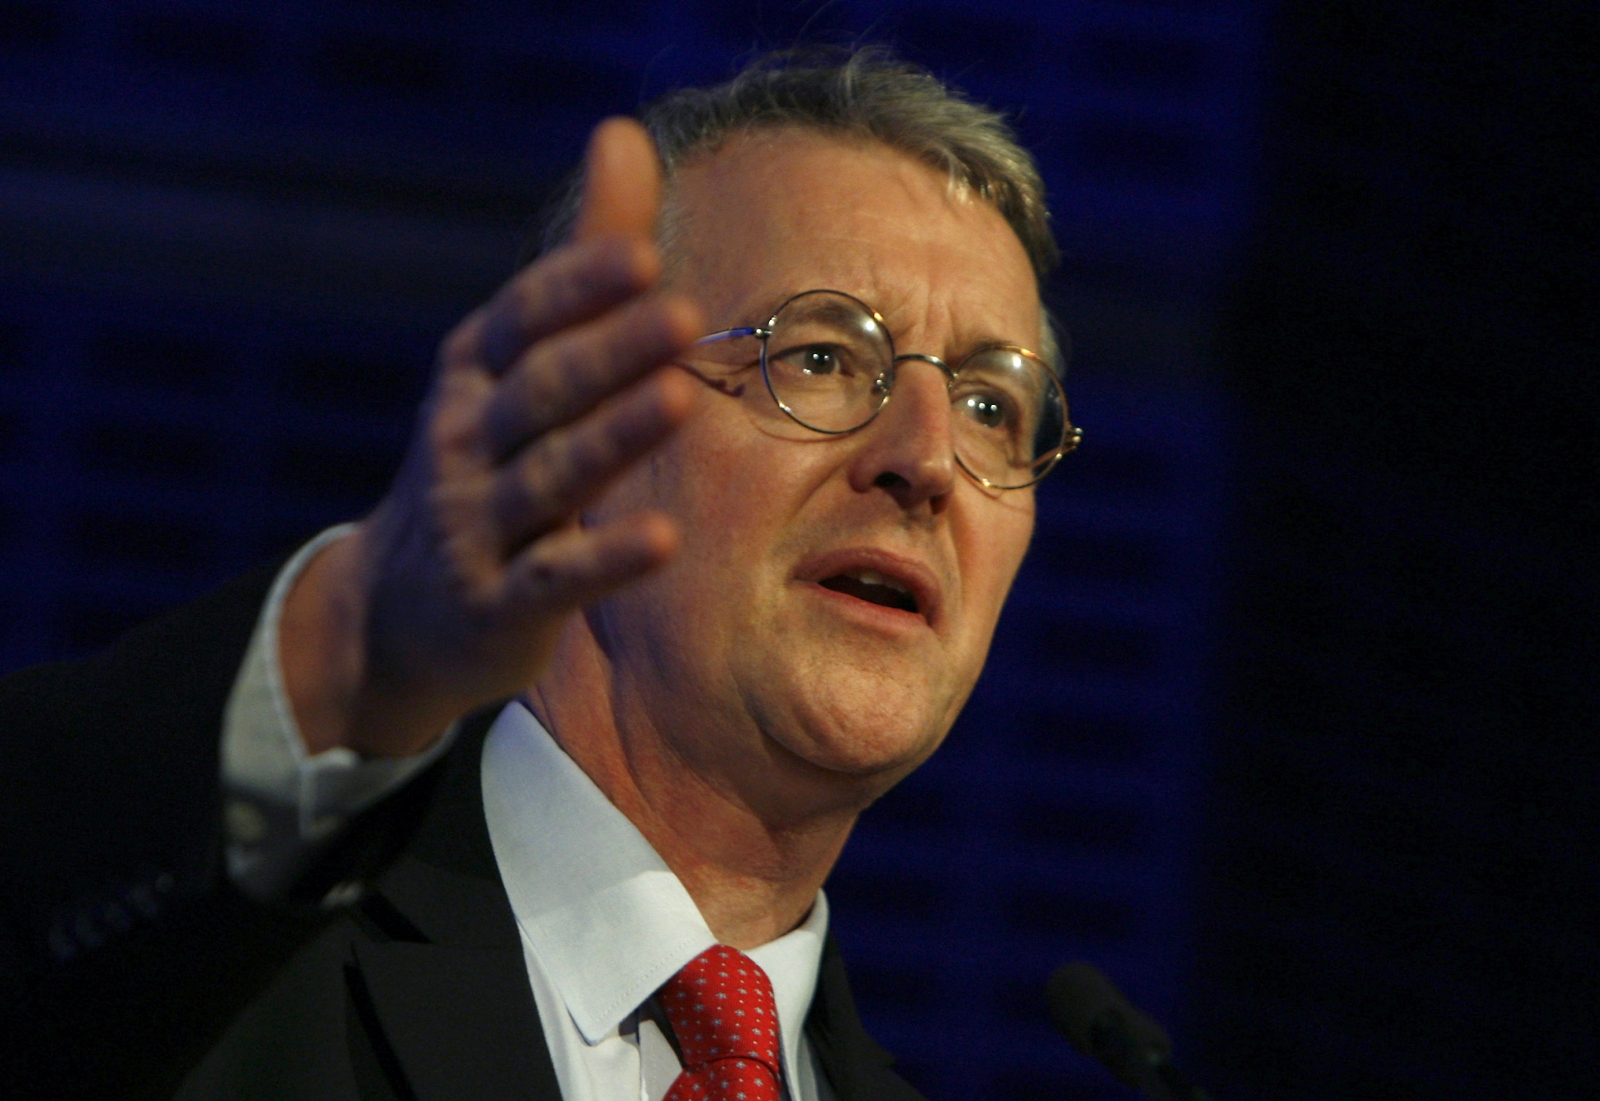 Hilary Benn spoke at Labour's annual conference